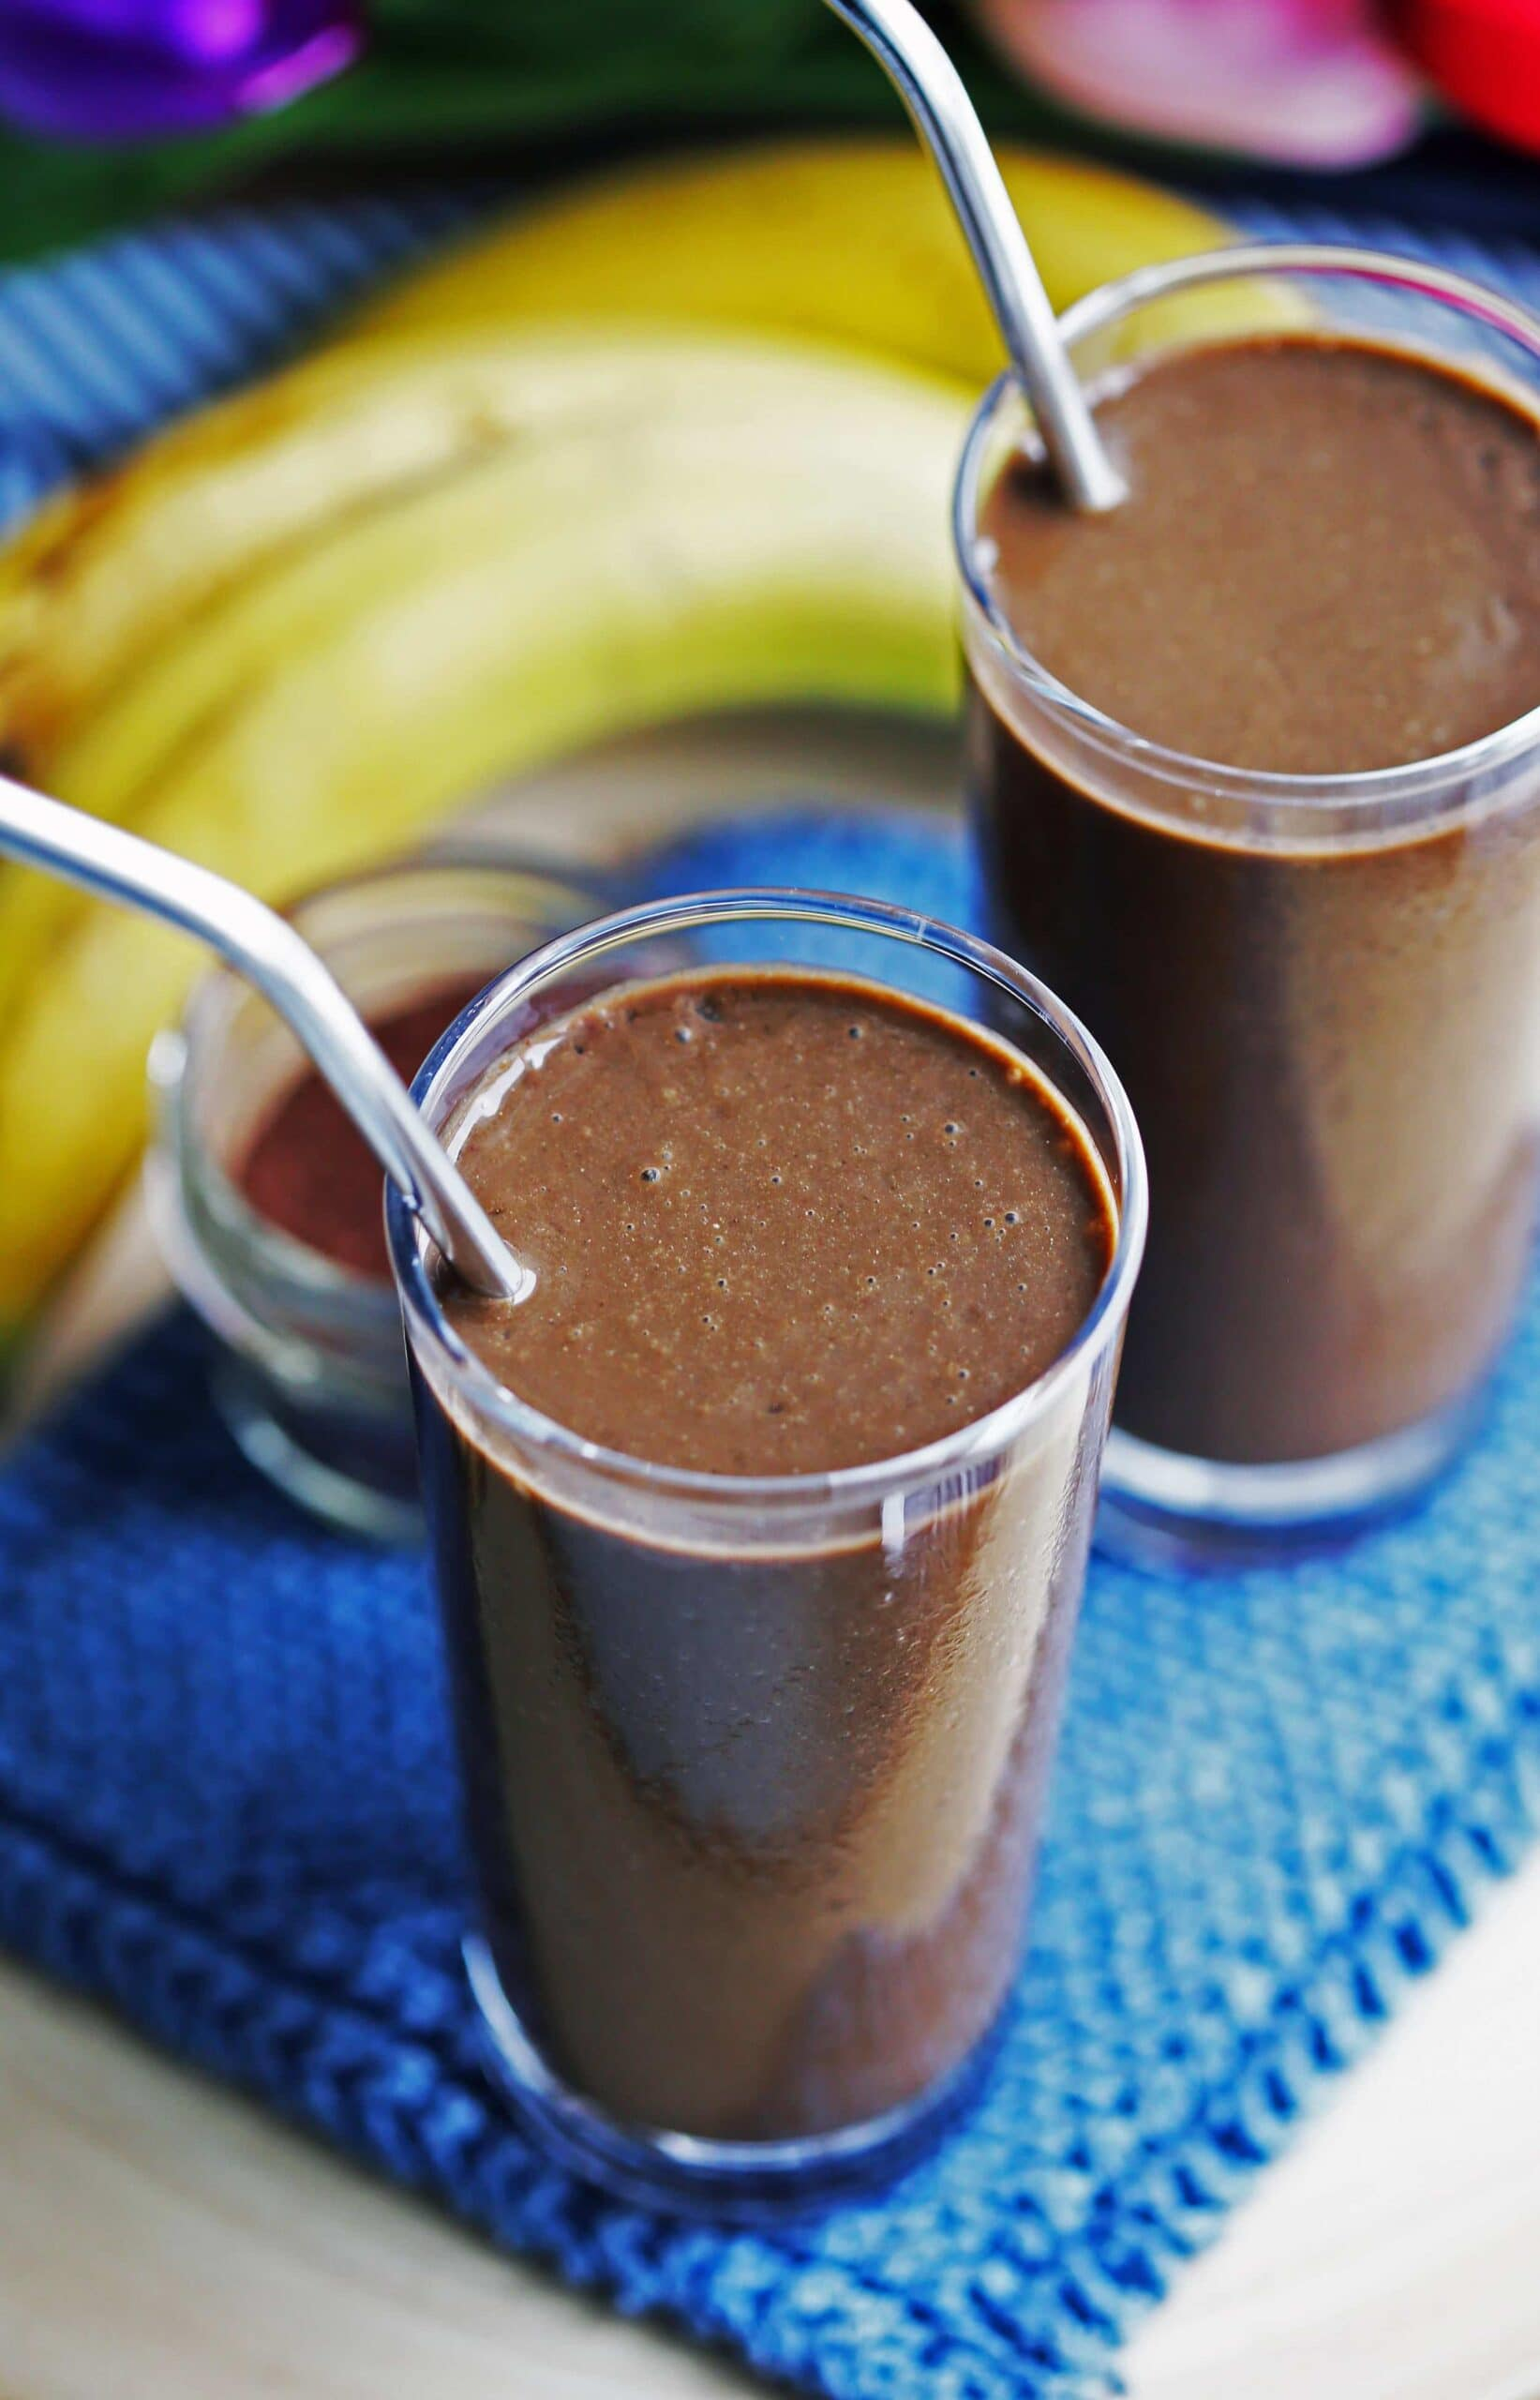 Healthy Chocolate Banana Smoothie